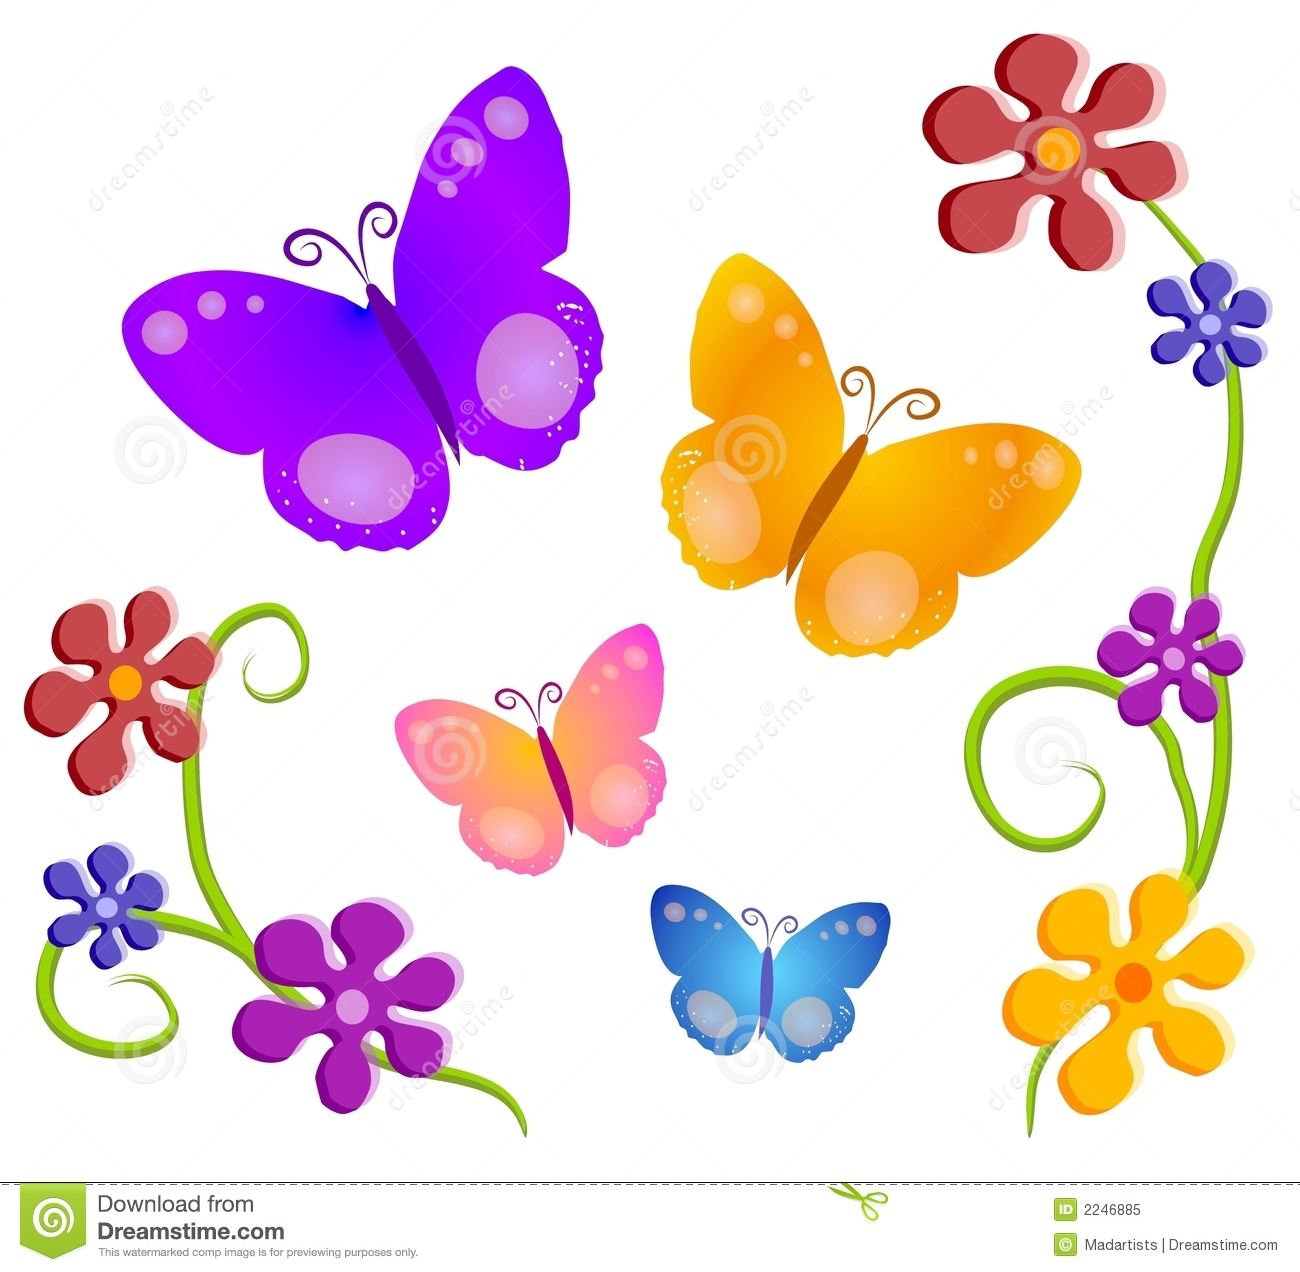 Glitch clipart butterfly Illustration Cartoon Vector A tones